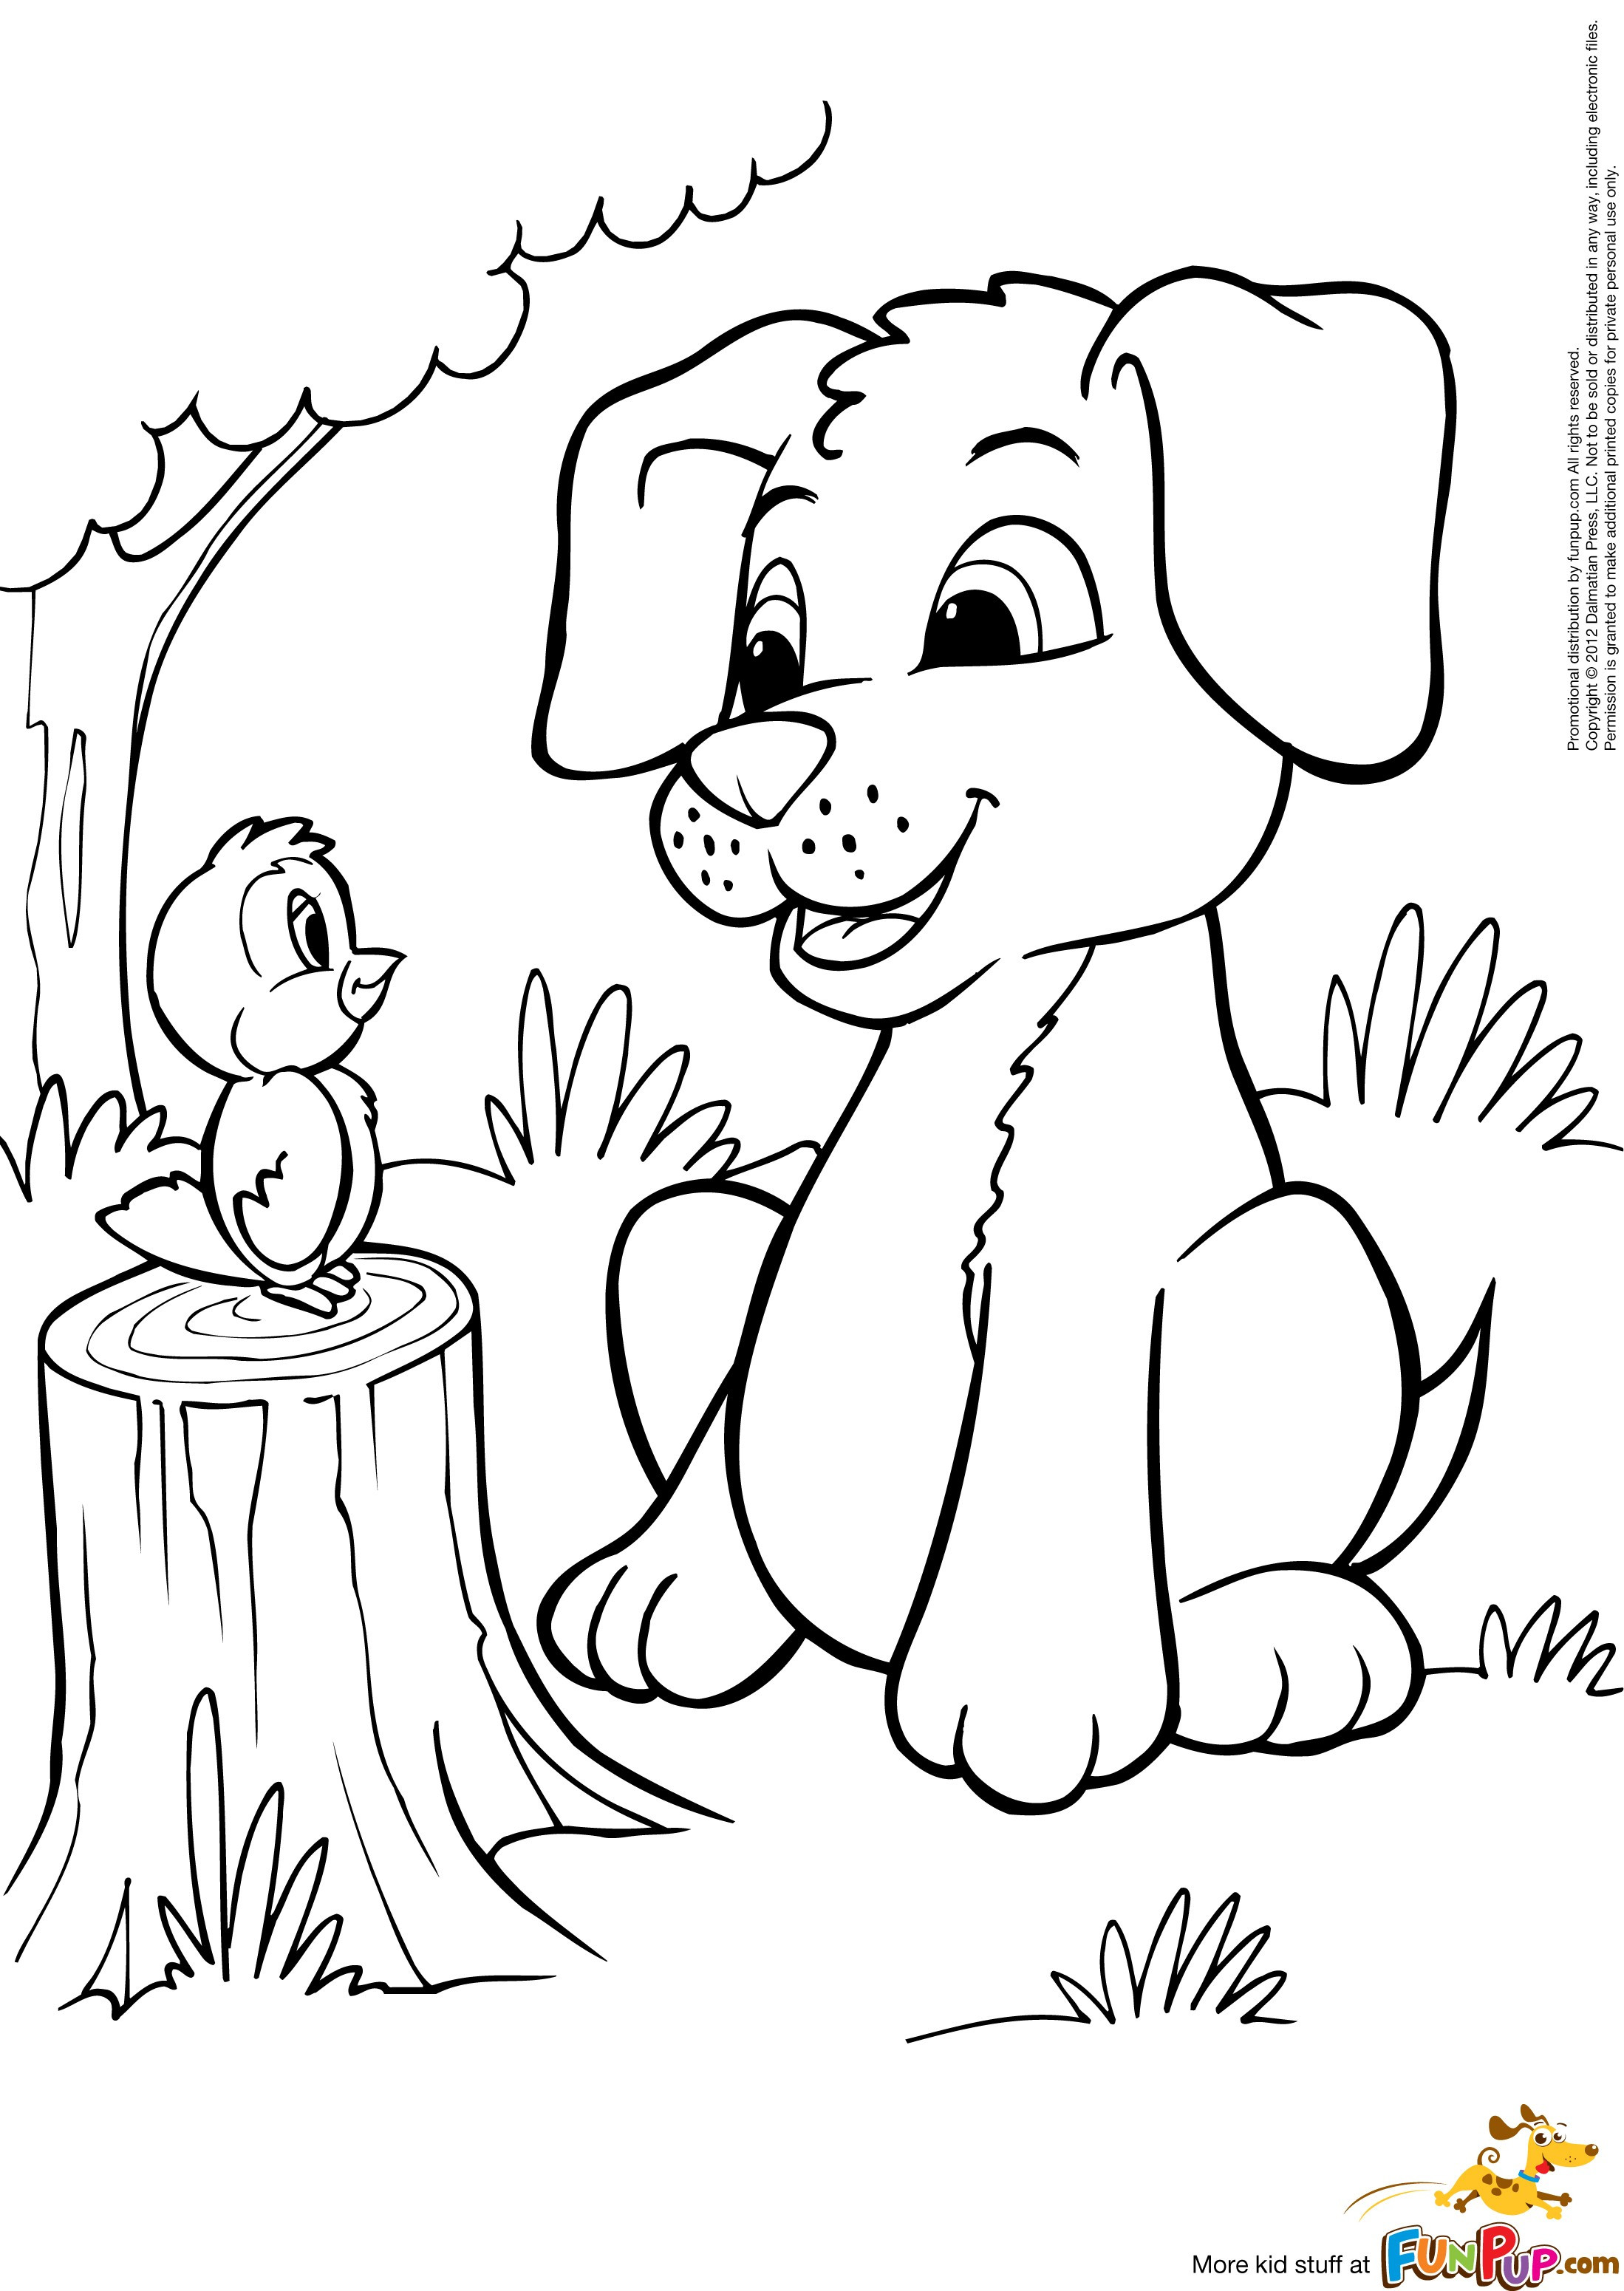 pictures of dogs and puppies to colour in kitten and puppy coloring pages to print coloring home in dogs to pictures and puppies of colour